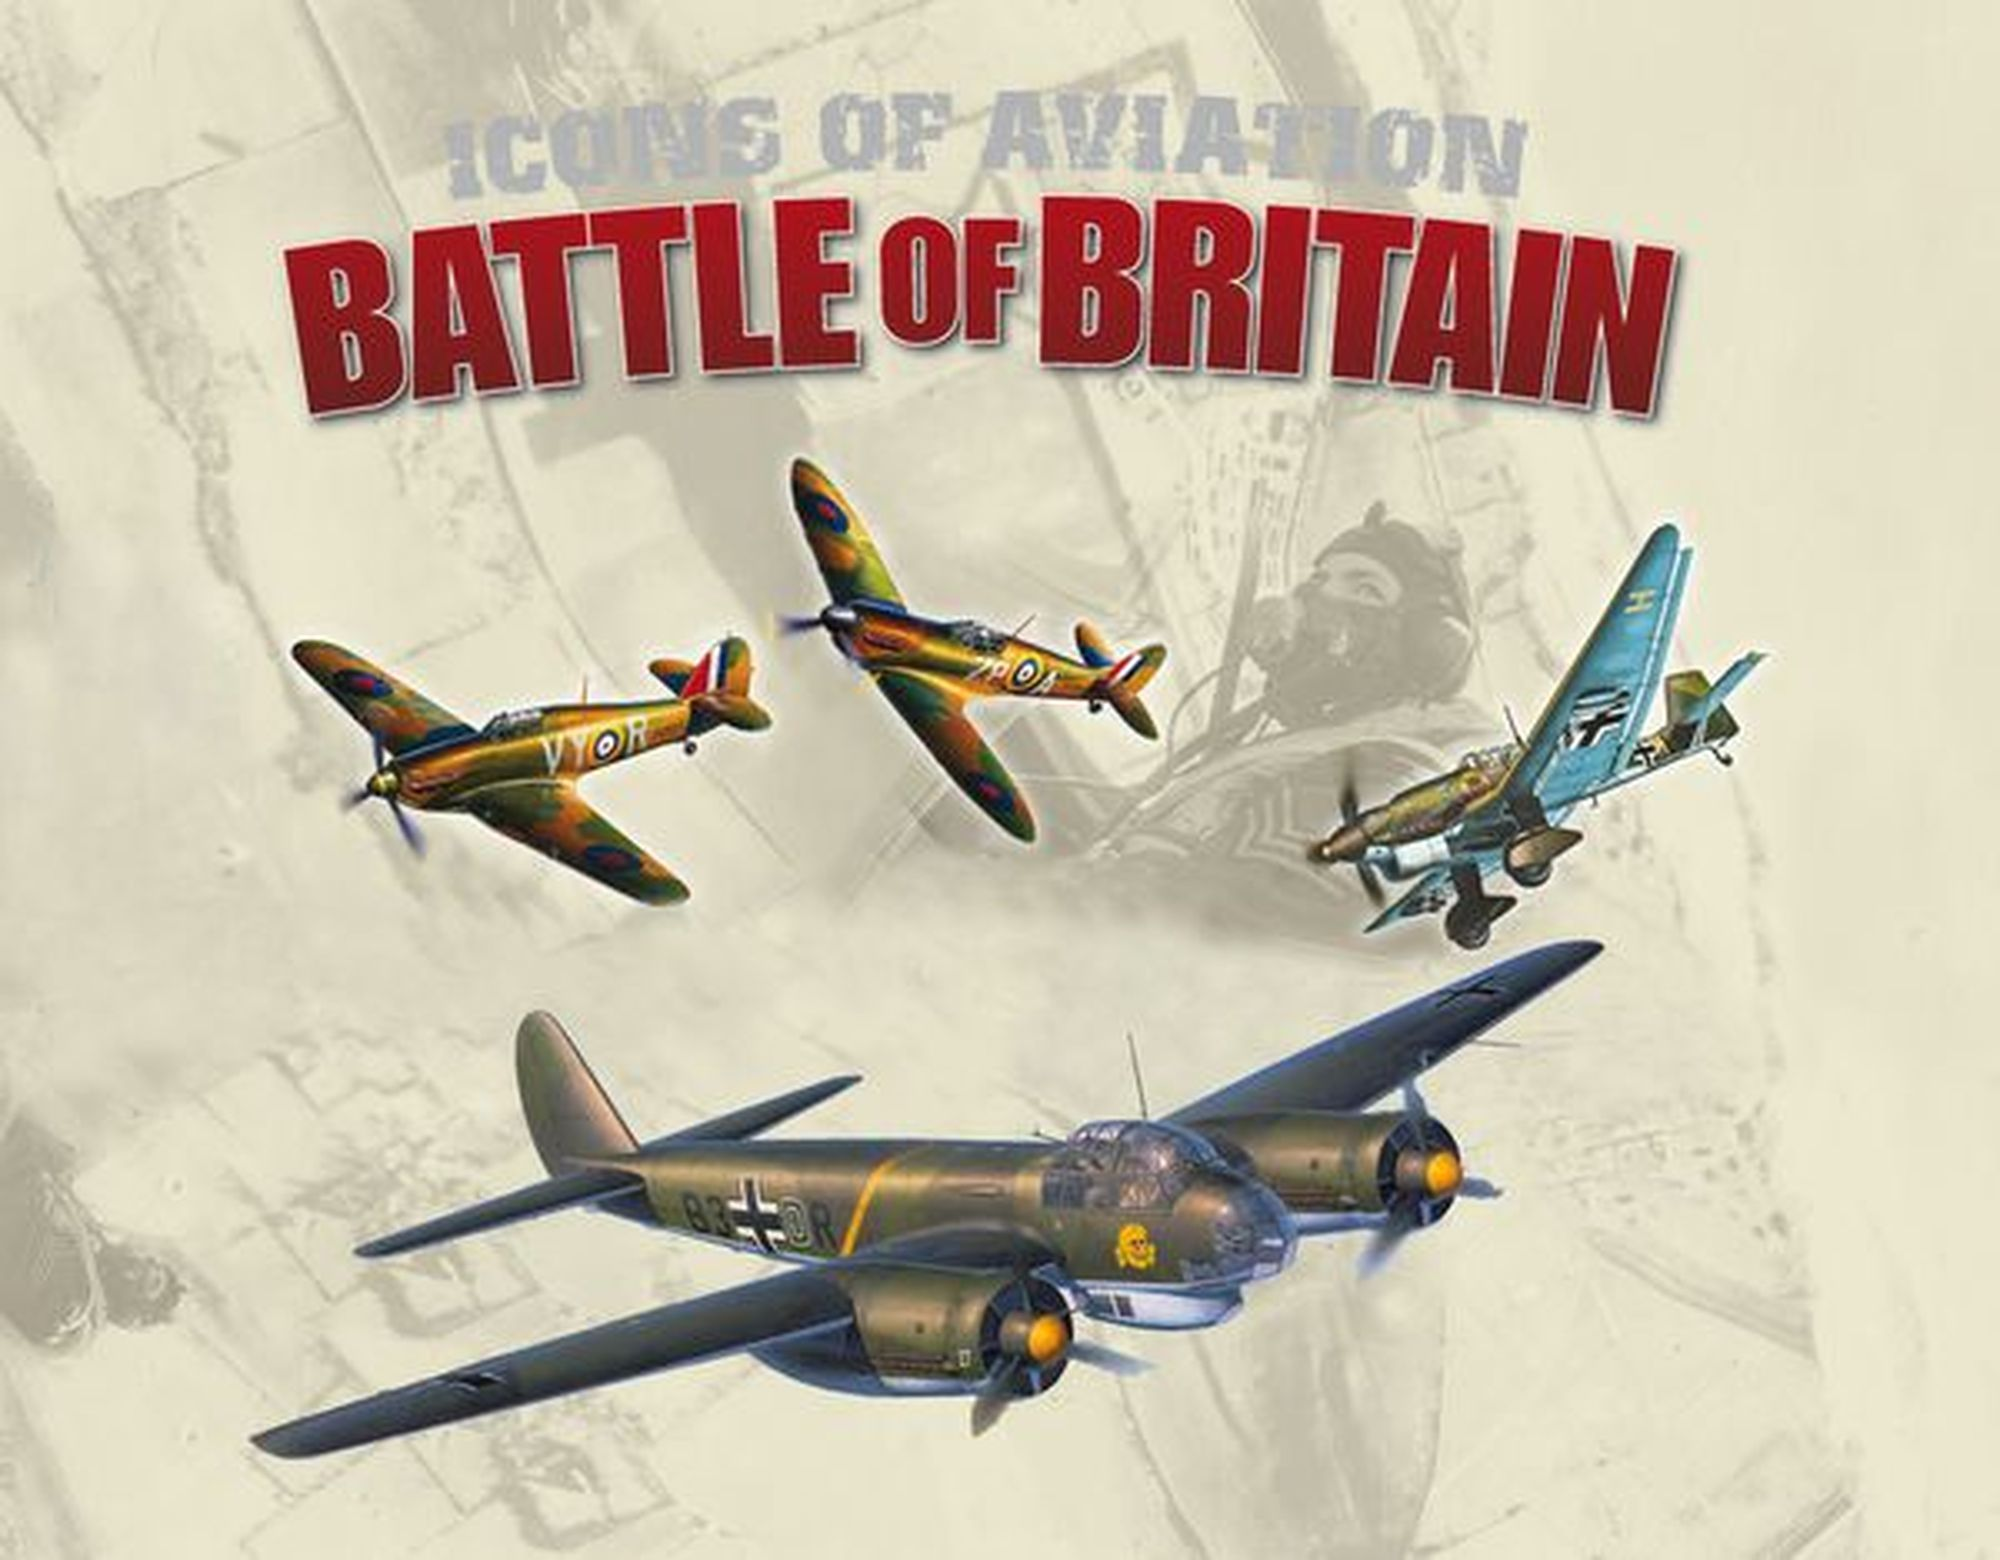 05691-80th-anniversary-Battle-of-Britain Revell-Neuheiten 2020